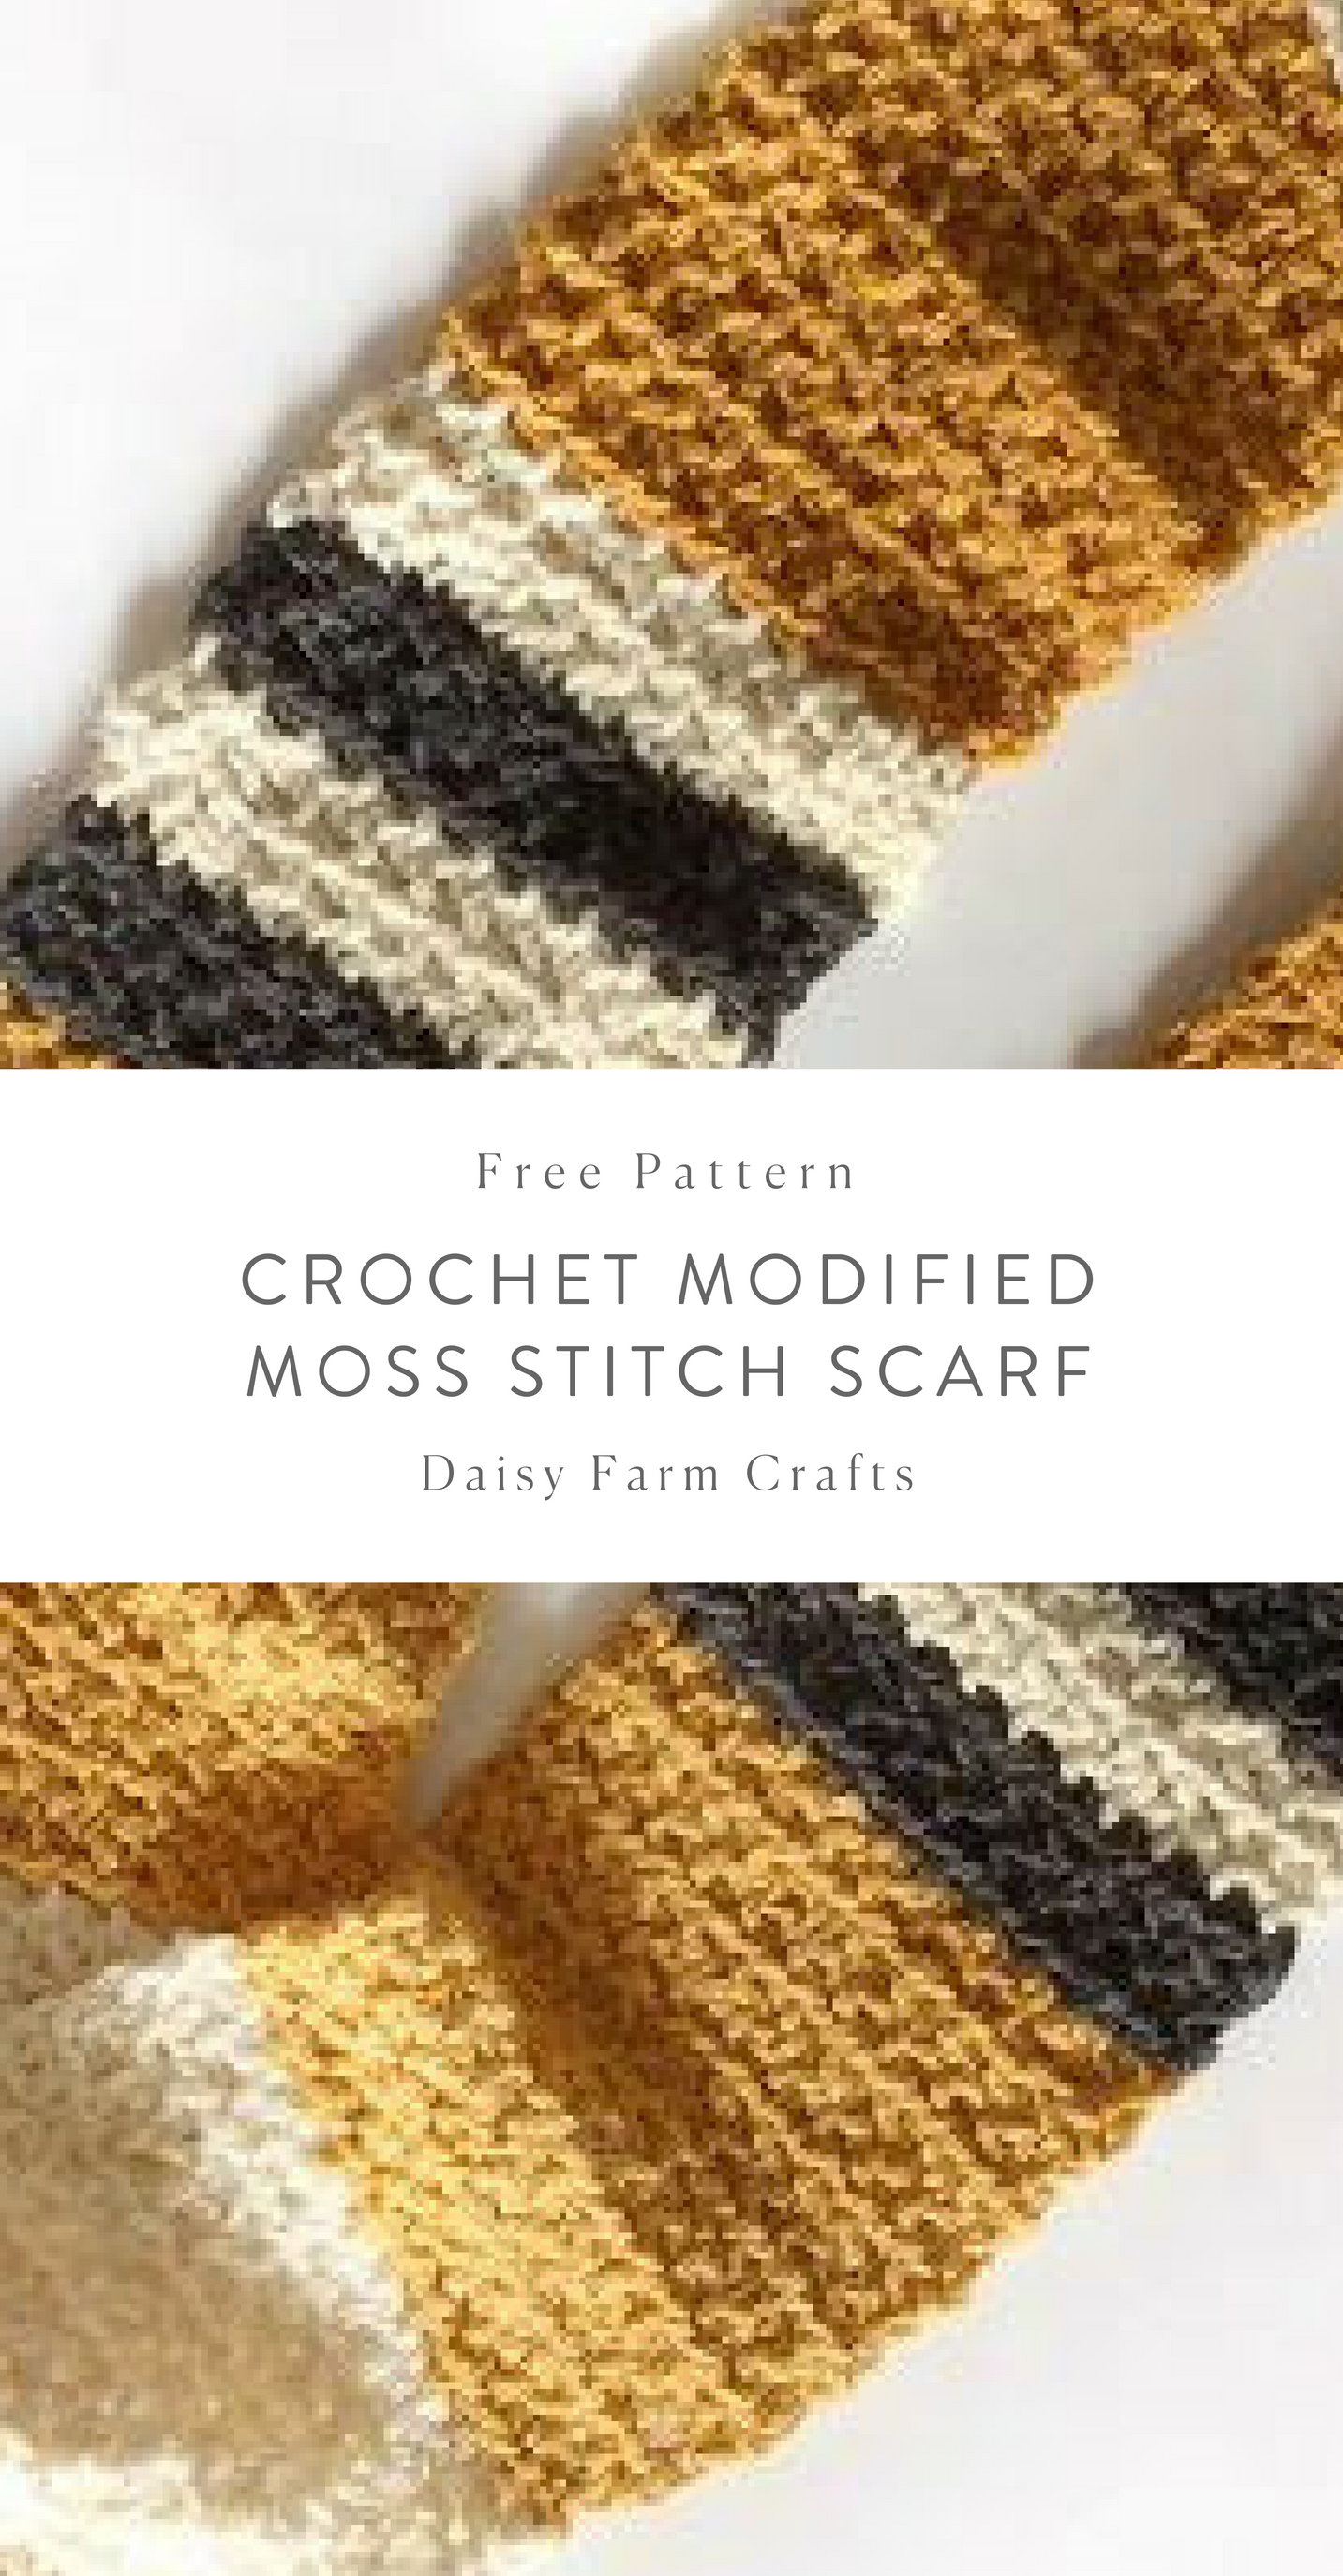 Free Pattern - Crochet Modified Moss Stitch Scarf | Crochet ...